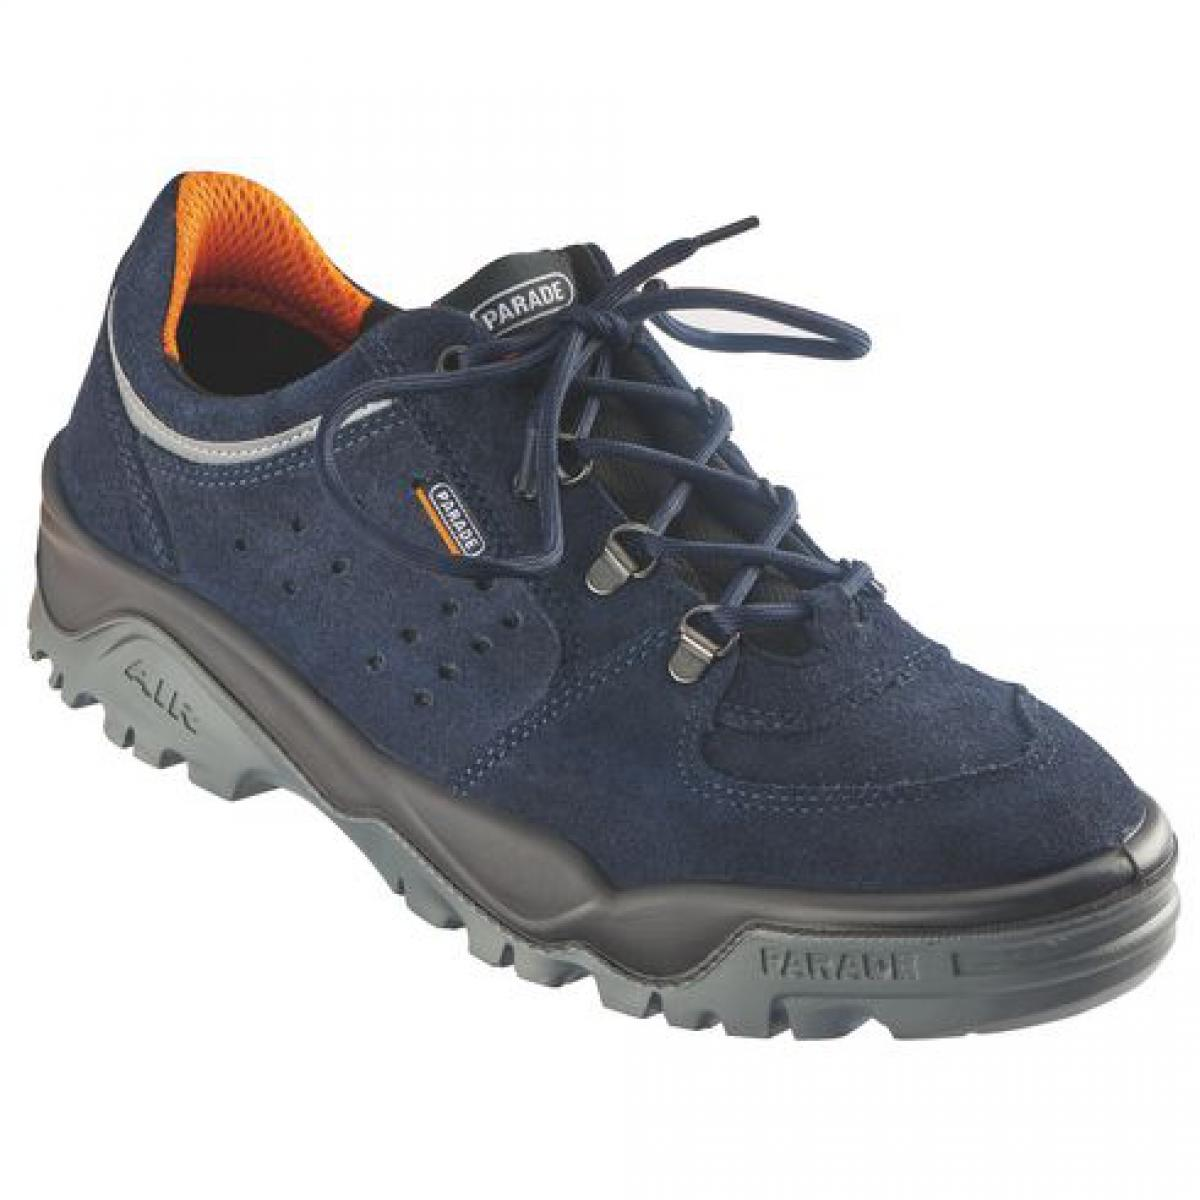 Parade Chaussure Doxo taille 46